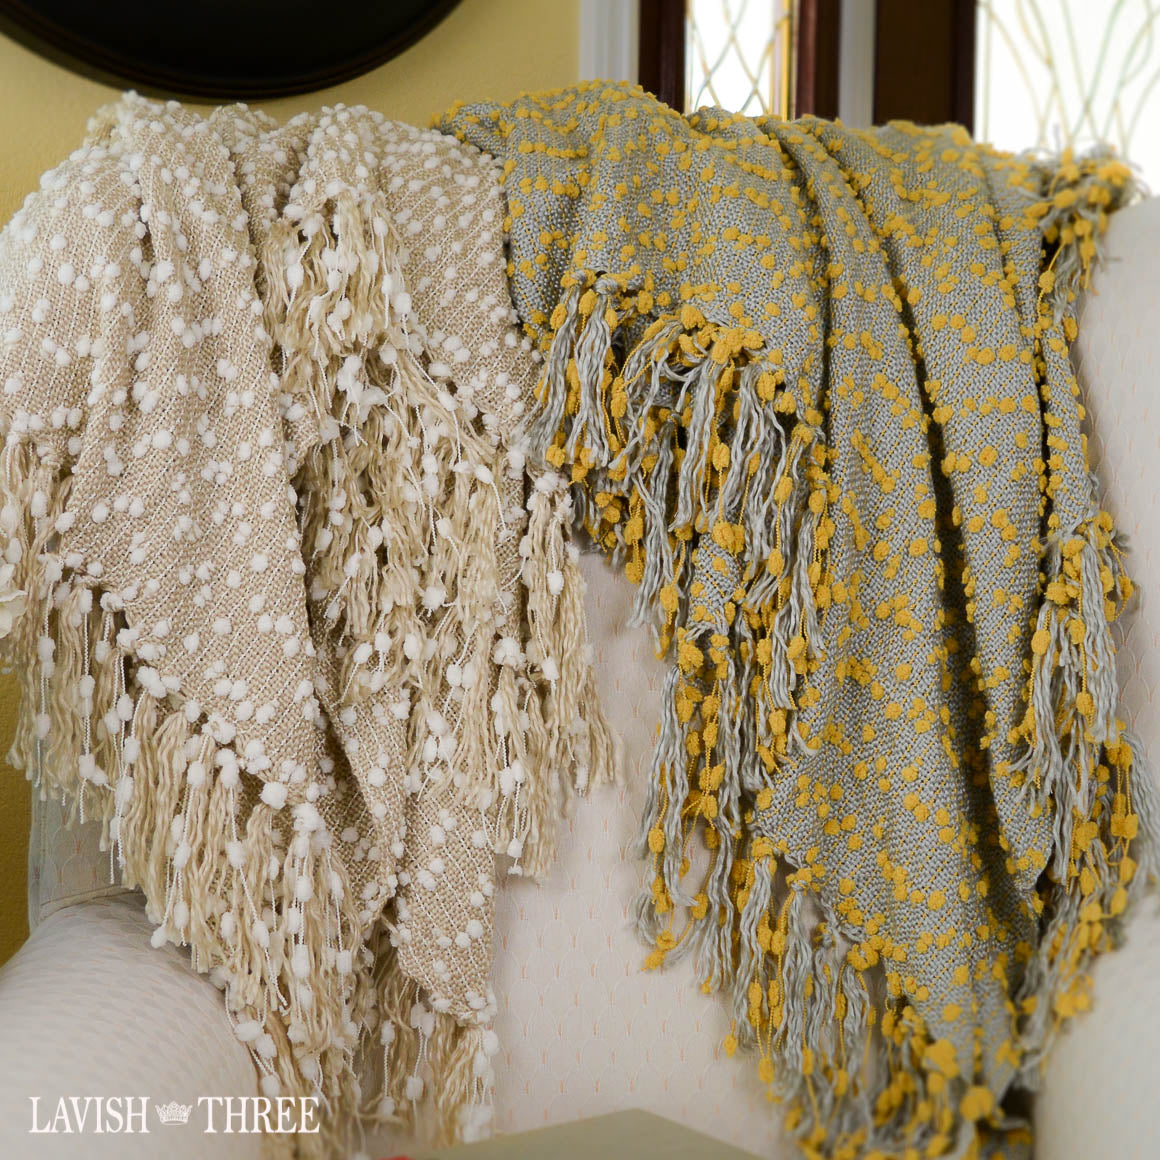 blanket throw pom pom yellow mustard white beige lavish three 3